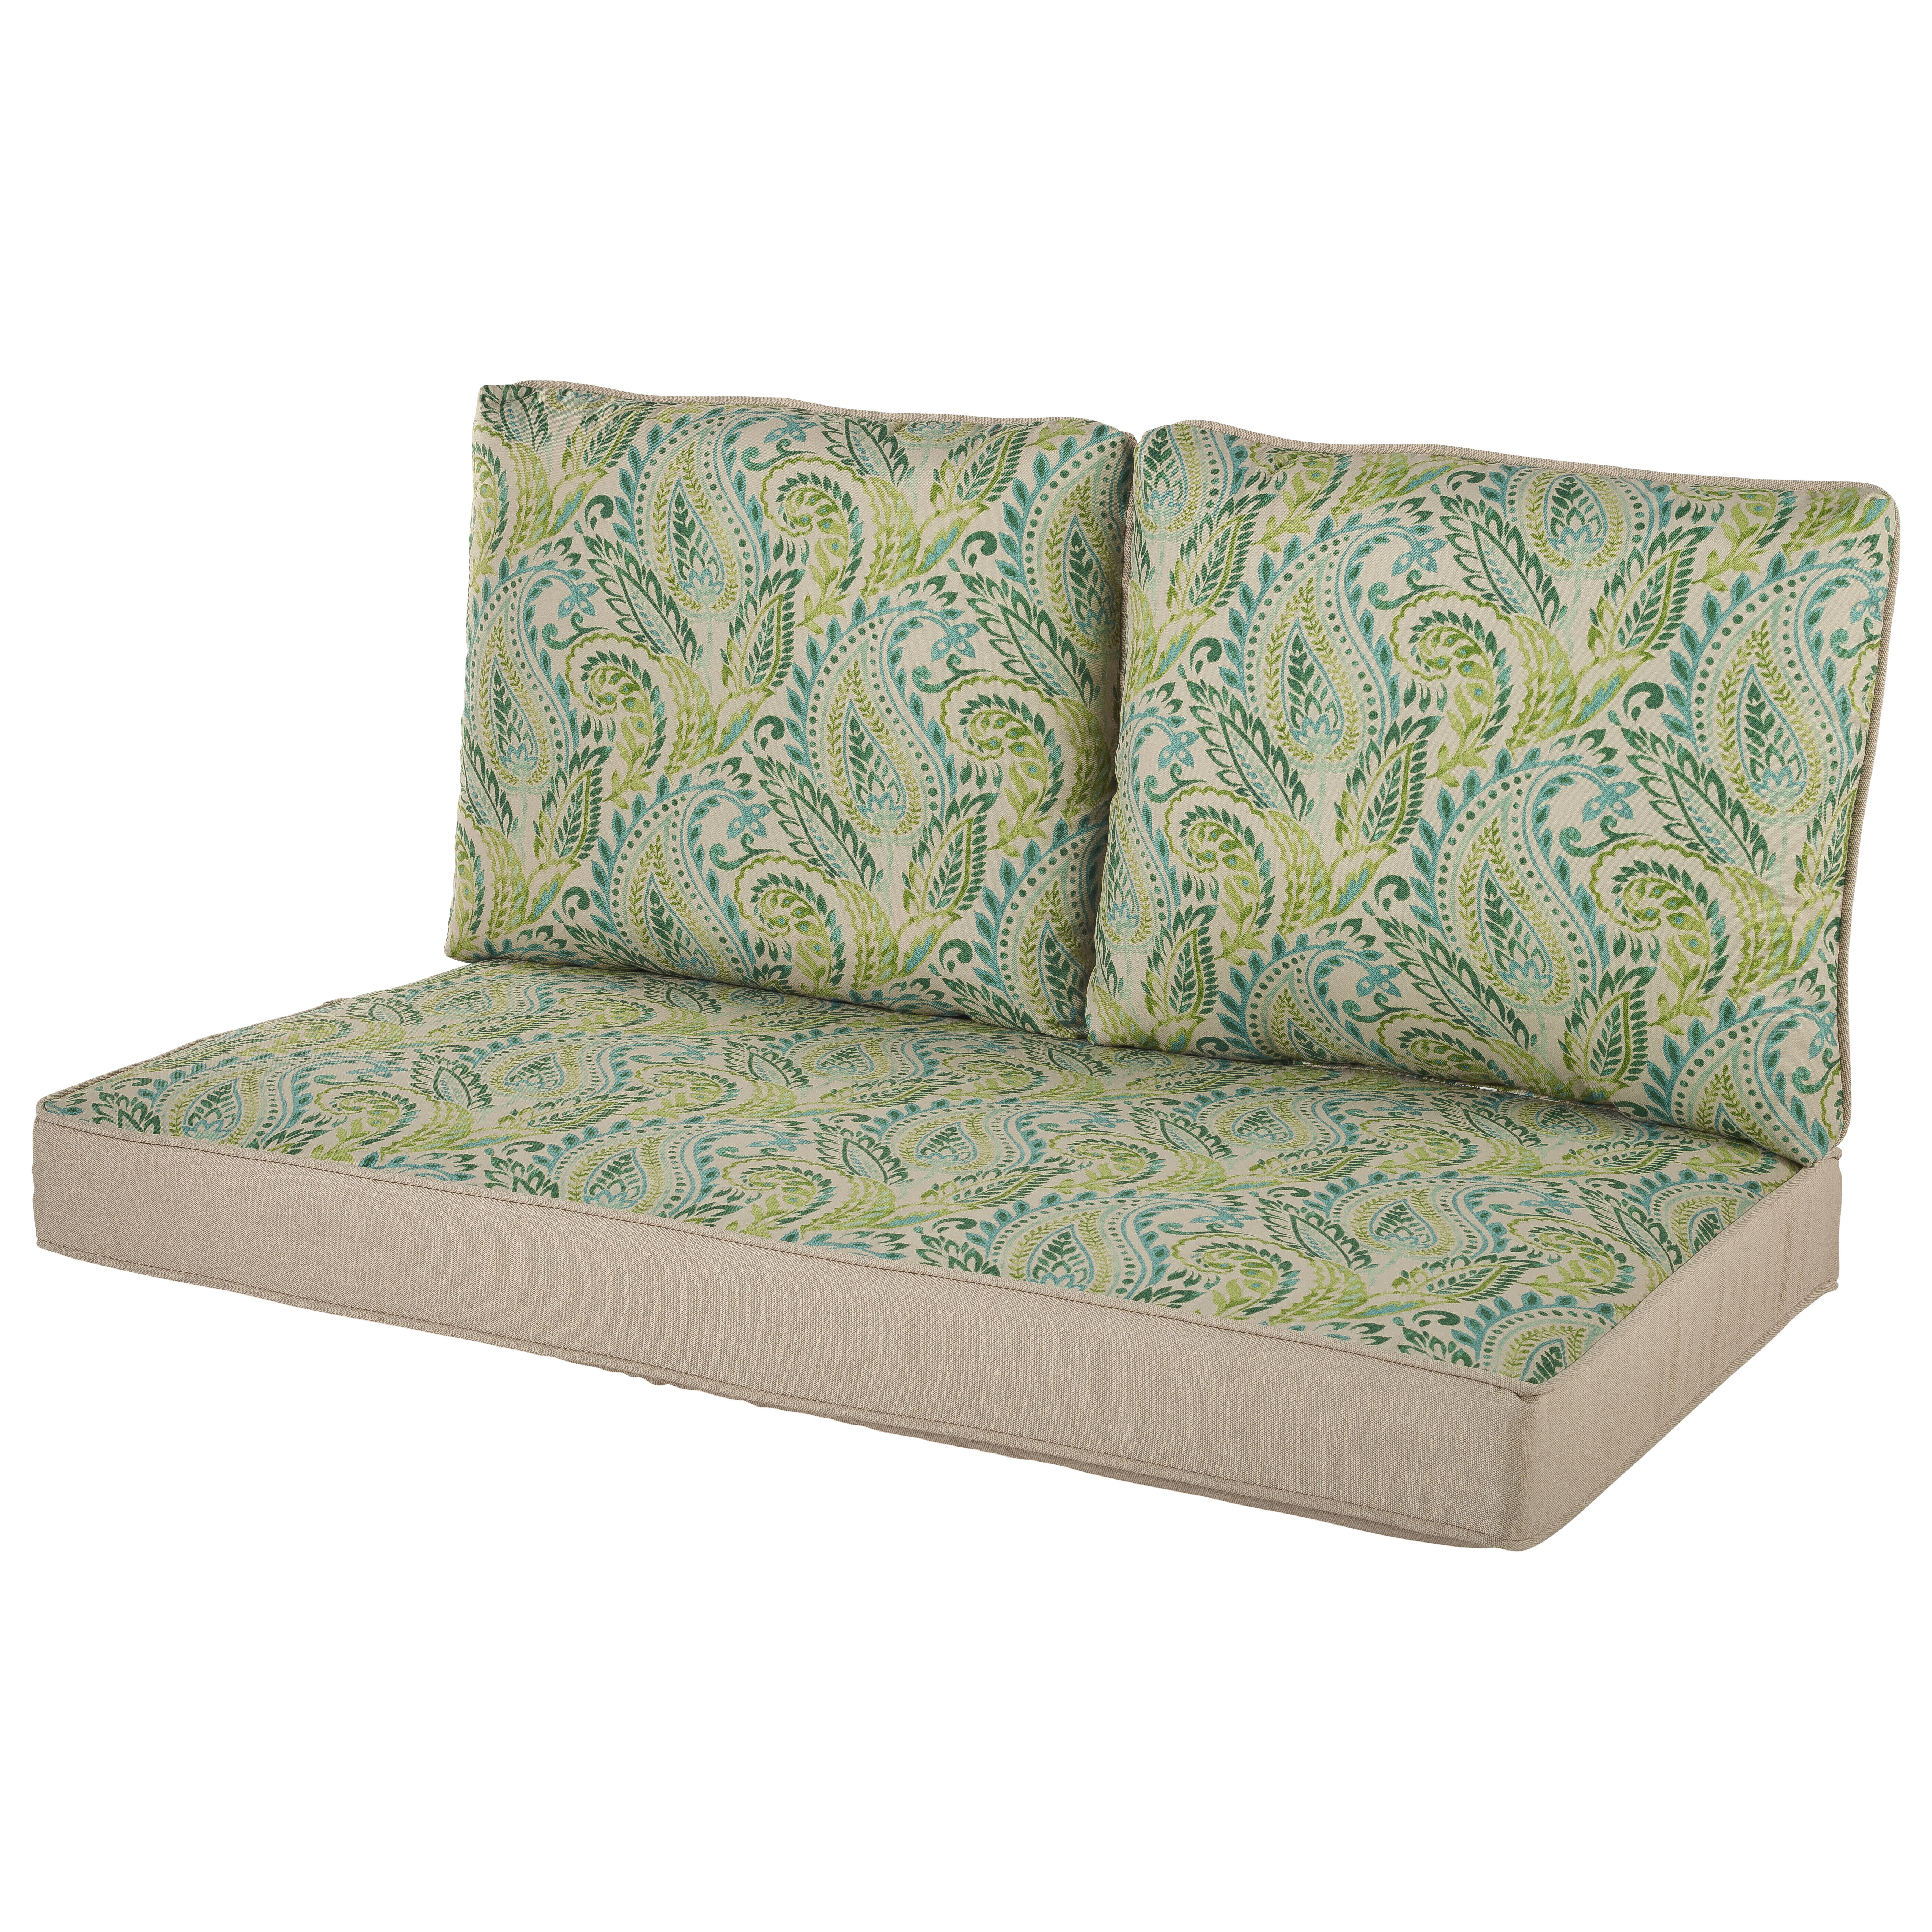 Arlmont Co Outdoor Loveseat Cushion Wayfair